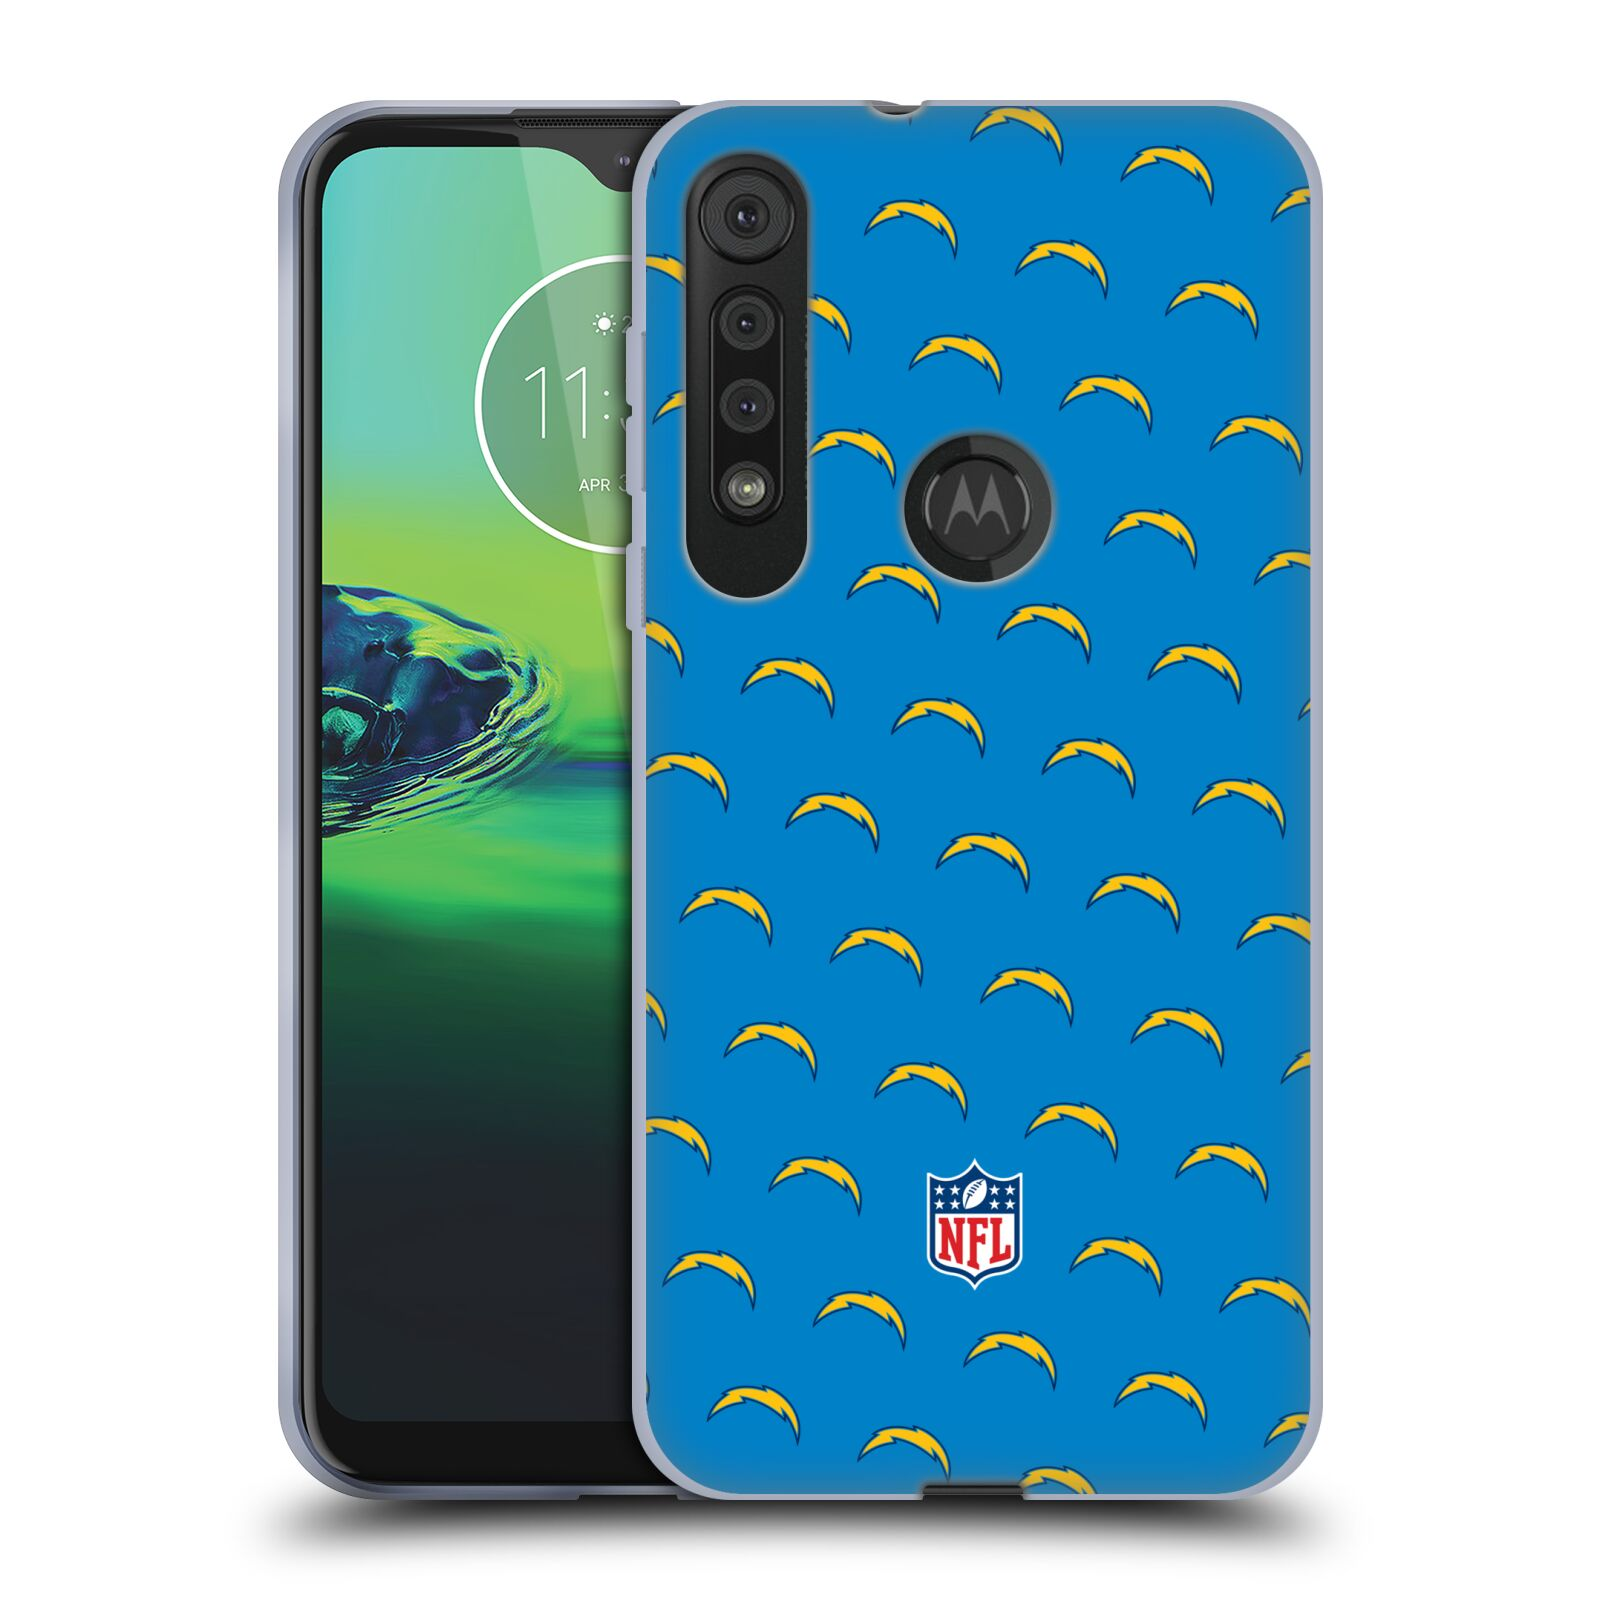 Official NFL 2017/18 Los Angeles Chargers Patterns Gel Case for Motorola One Macro / Moto G8 Play